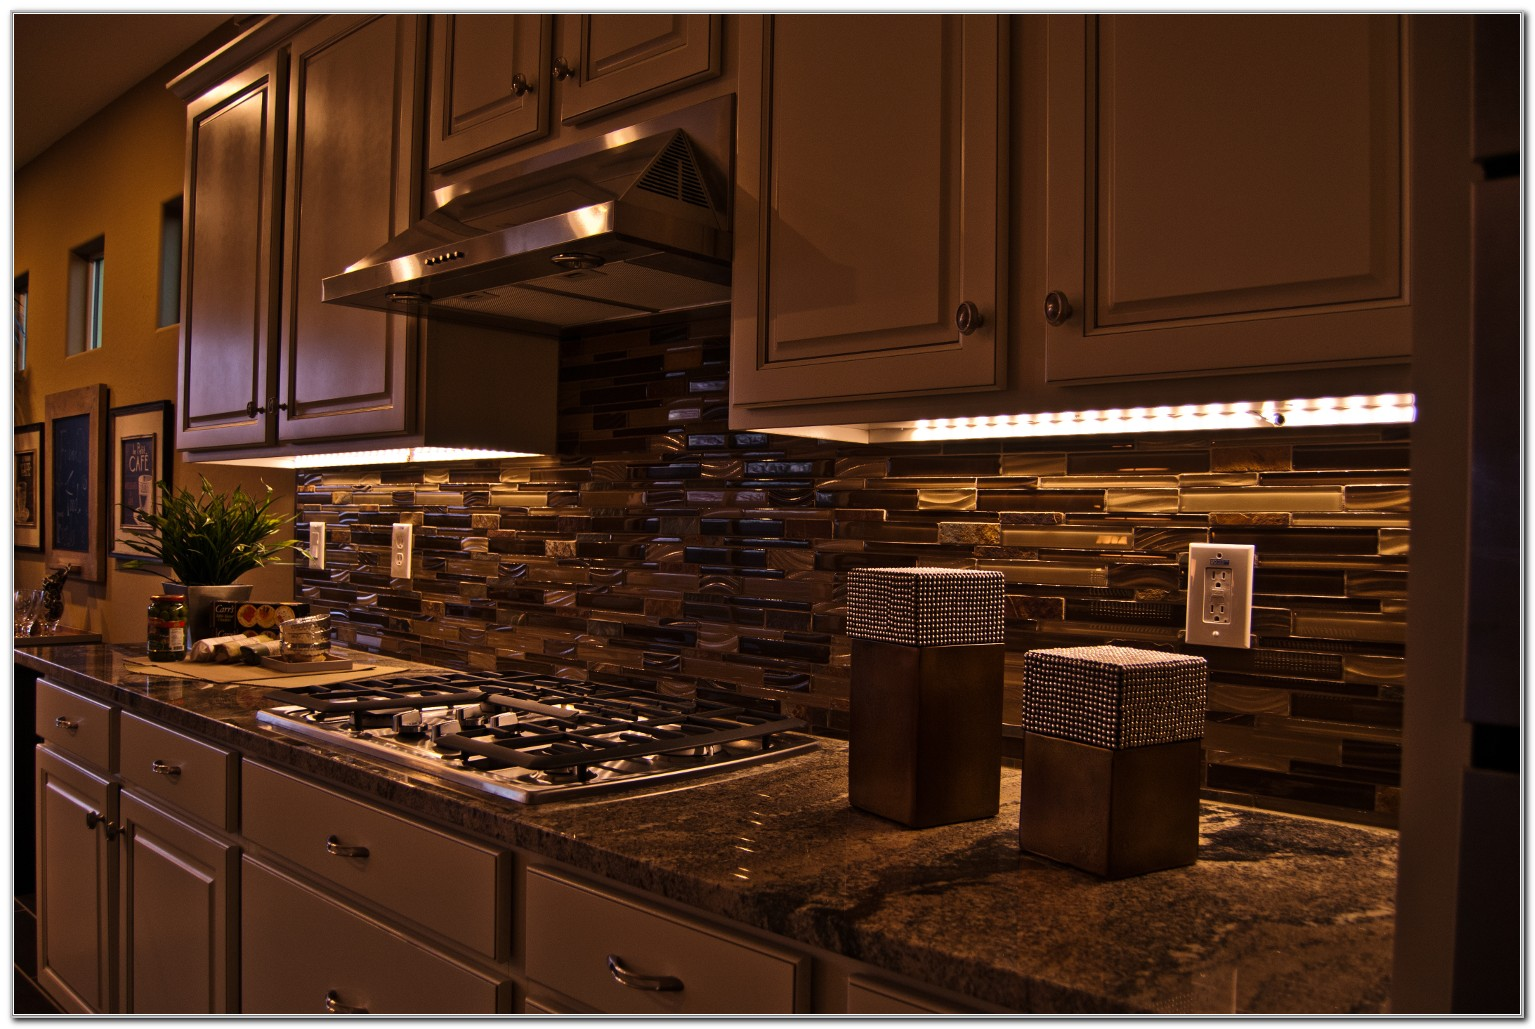 Led Lights Under Cabinets